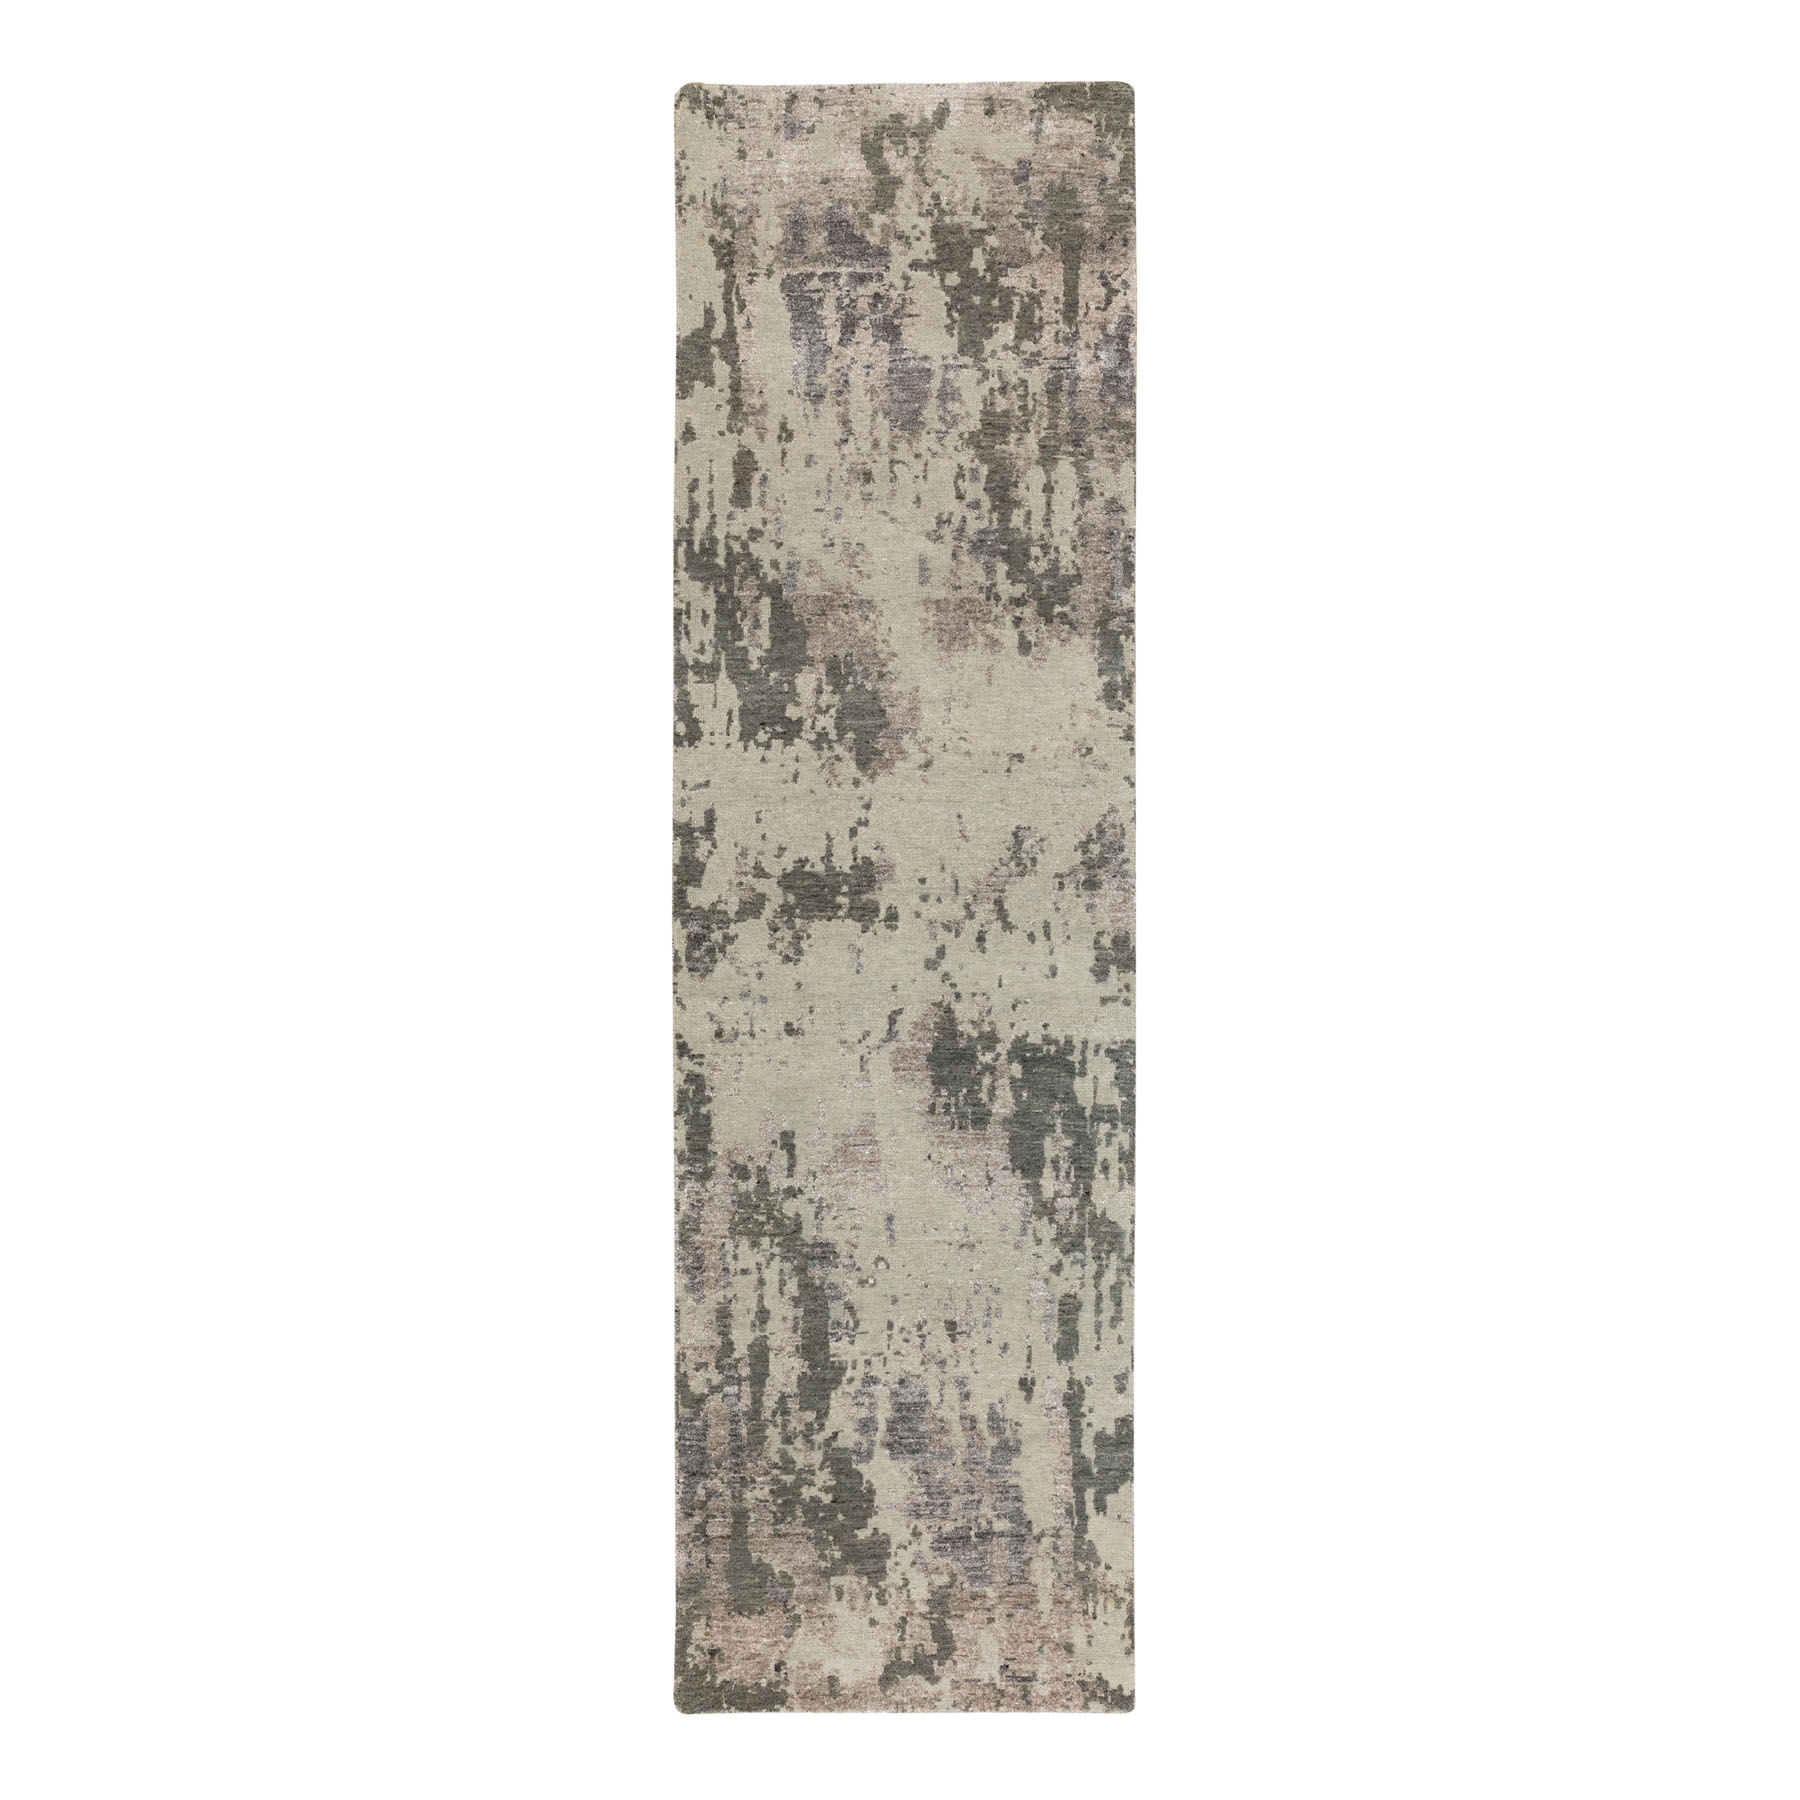 "2'8""x9'7"" Earth Tones Hi and Lo Pile Abstract Design Wool and Silk Hand Knotted Runner Oriental Rug"